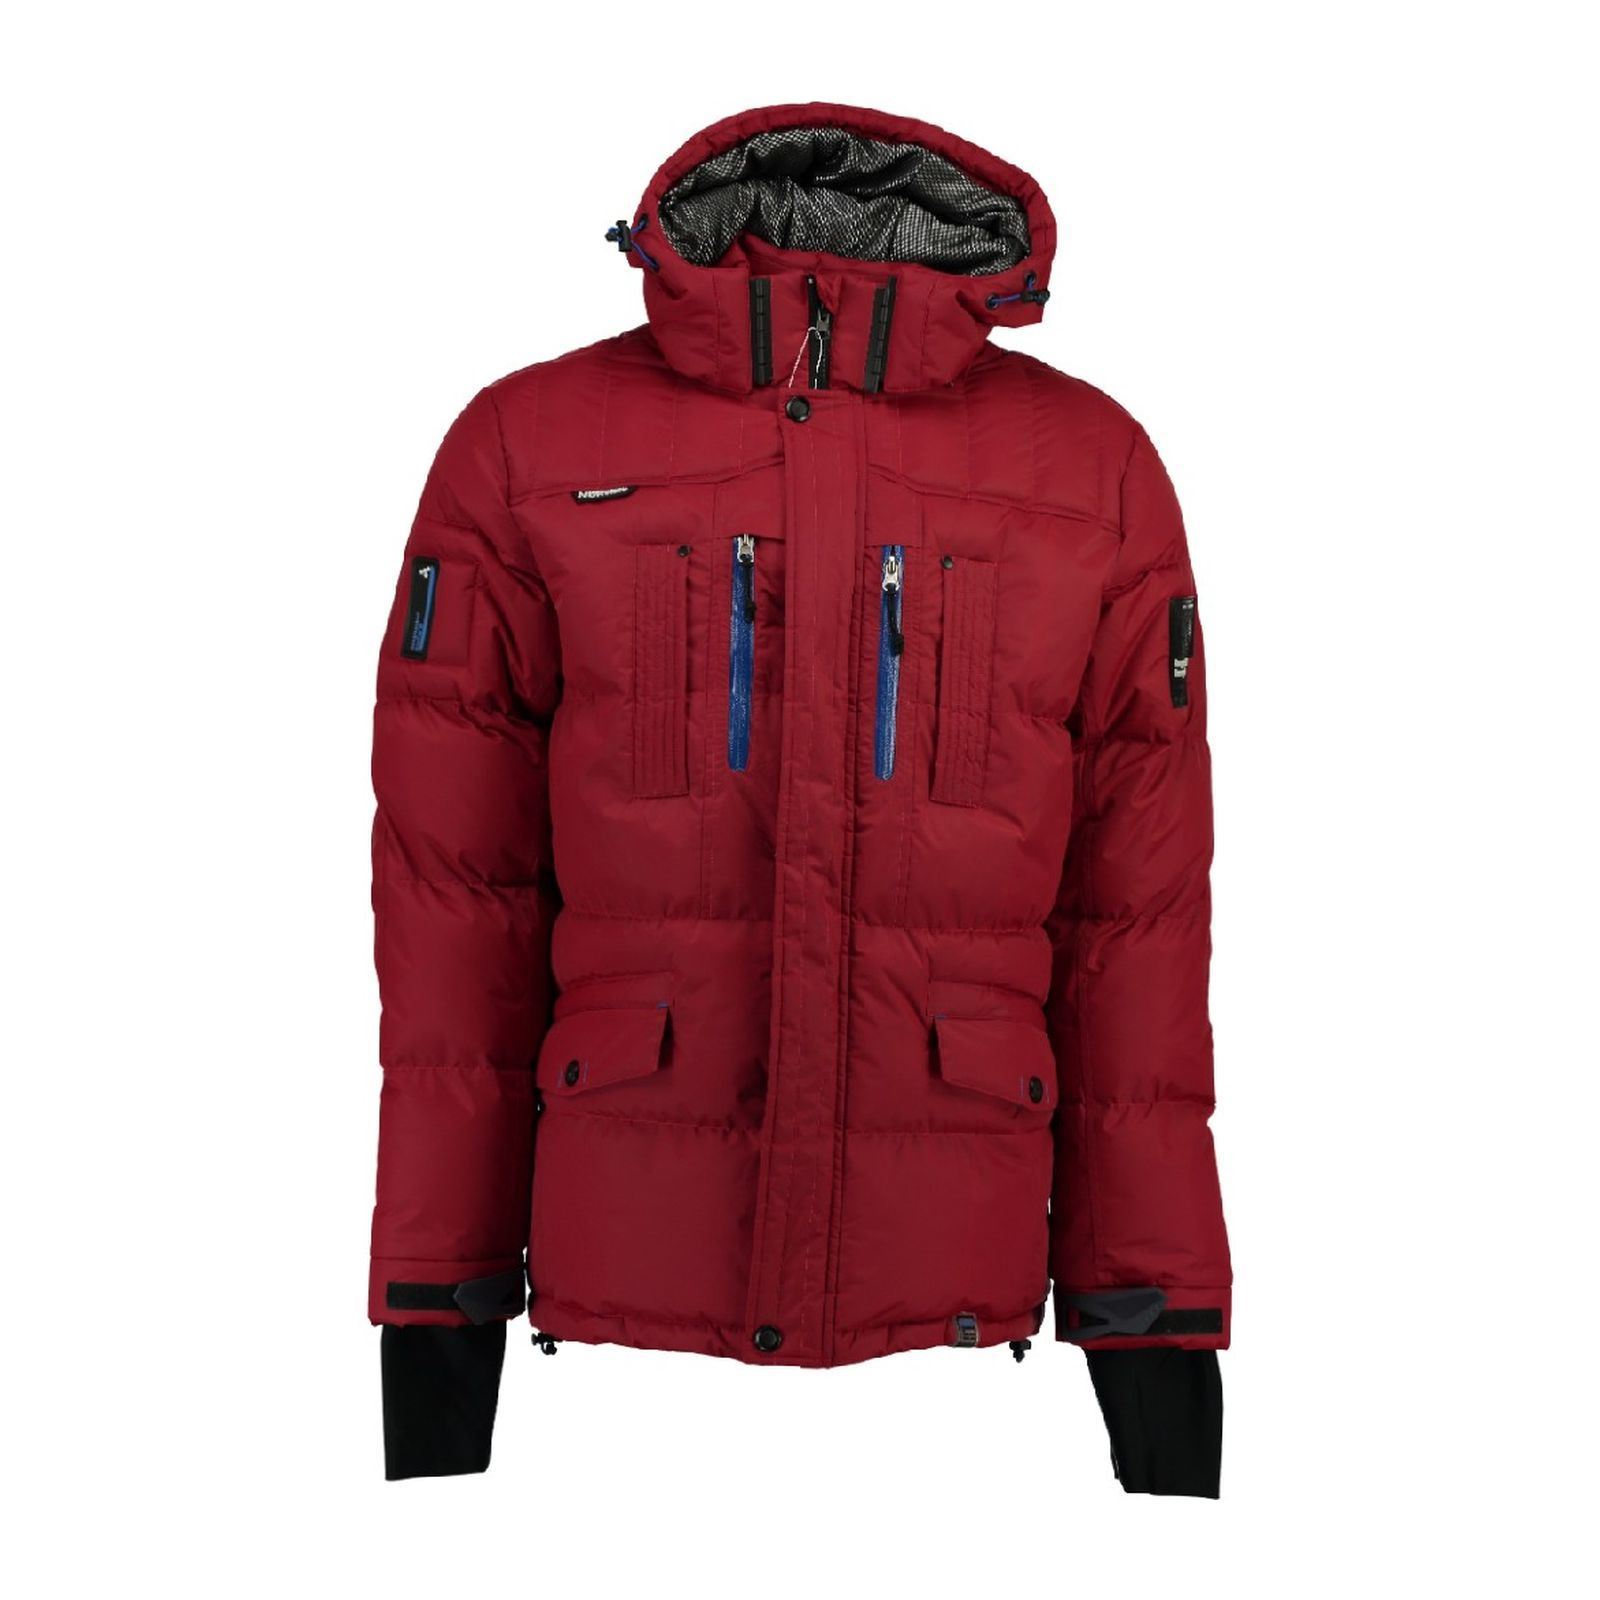 Geographical Norway Daunenjacke - rot  350b2a861d6